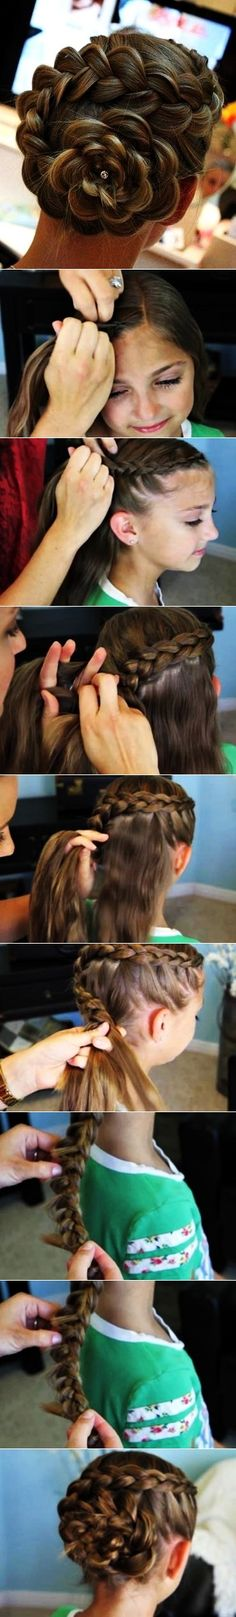 15 Spectacular #Hairstyle Ideas #Beauty #Fashion #Hair #HairCare #Makeup #Style